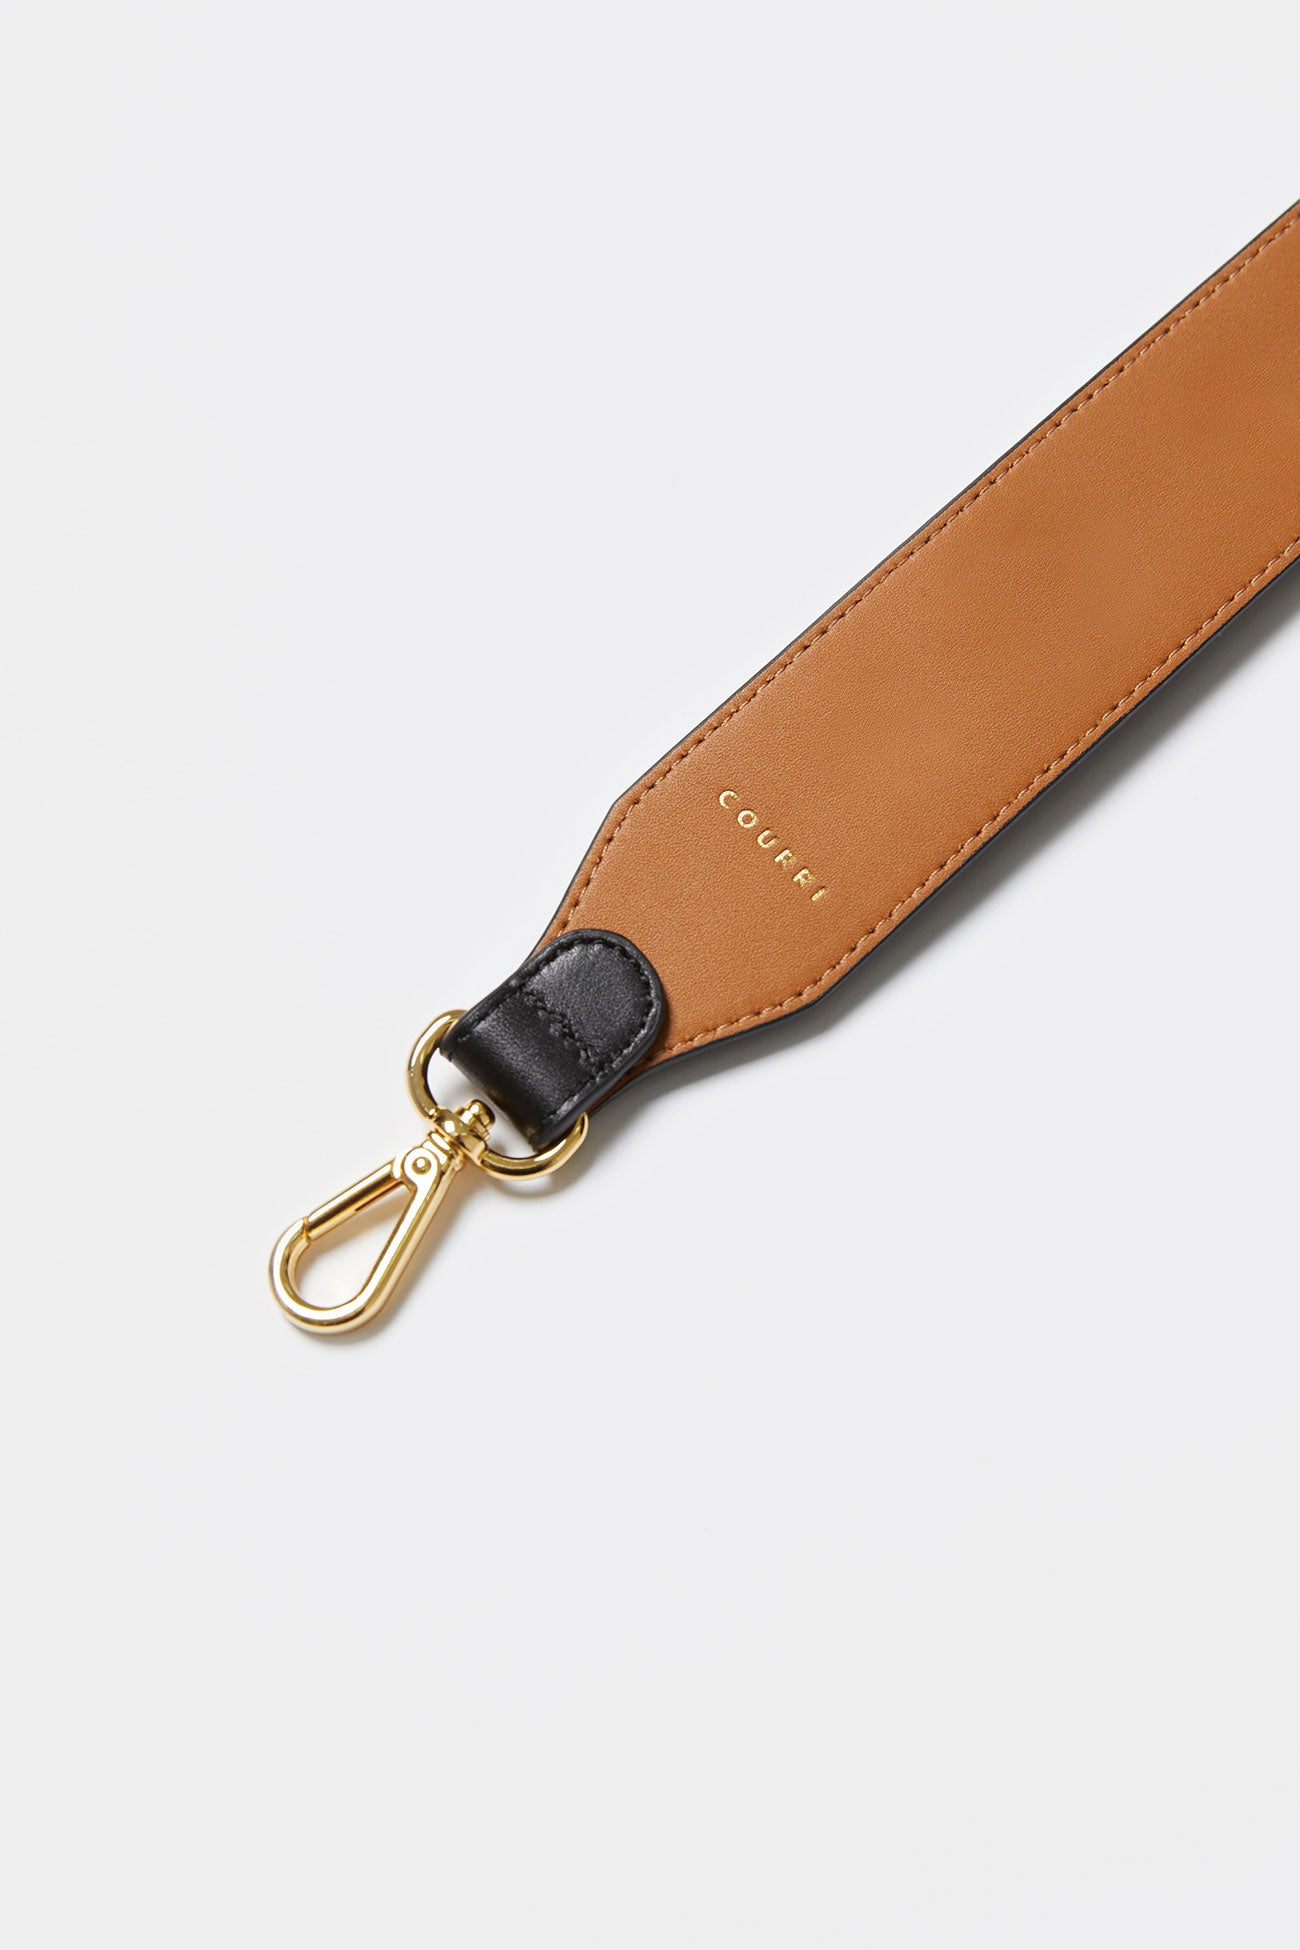 BLACK CODIE EMBELLISHED LEATHER STRAP [Long]